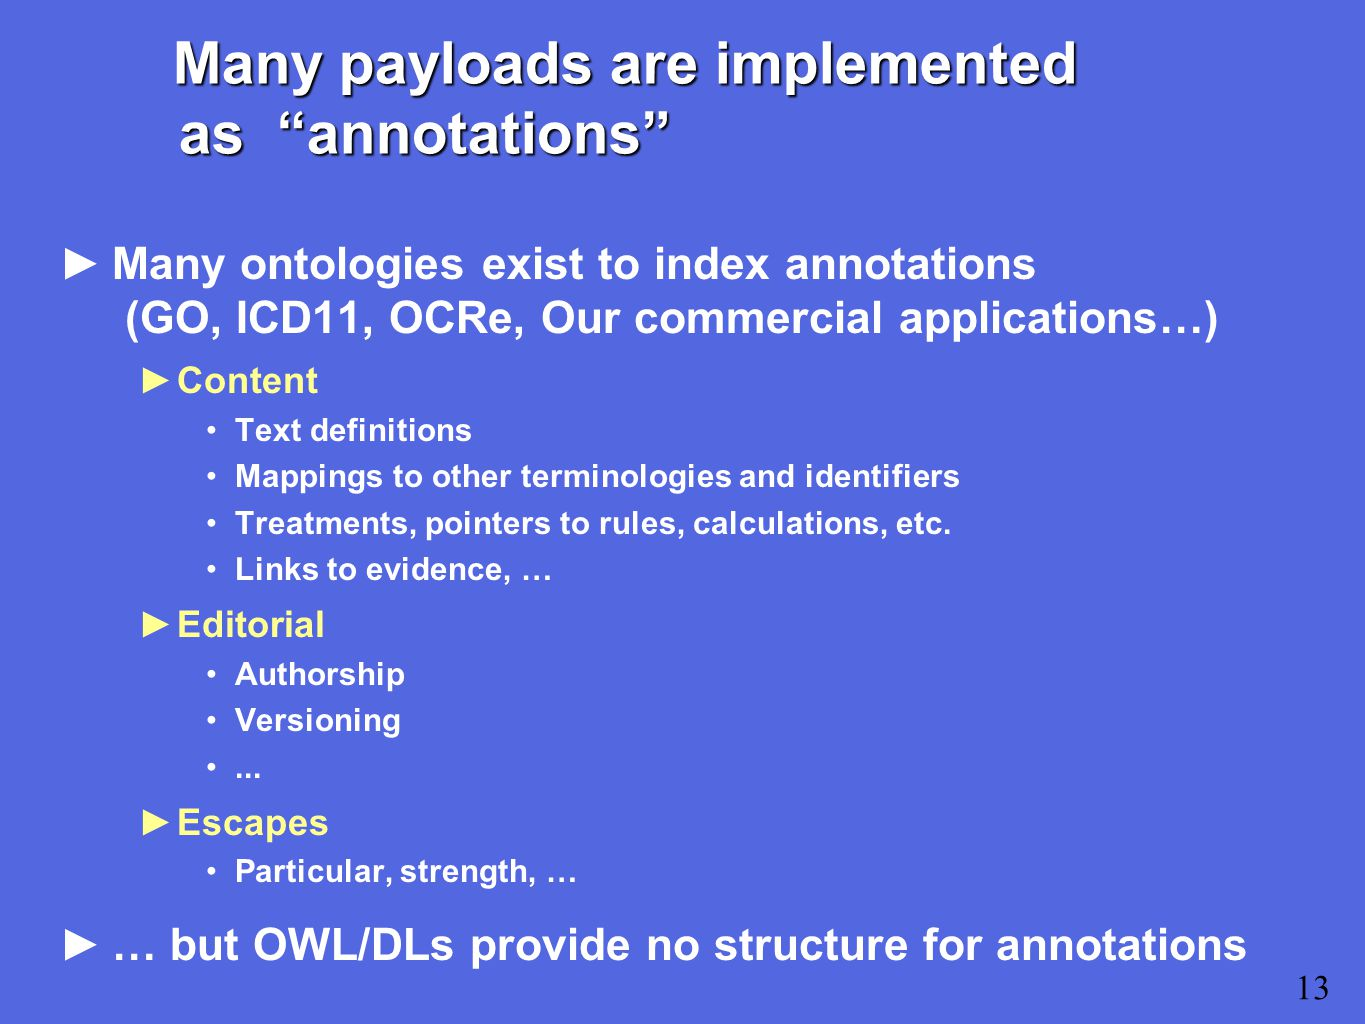 Many payloads are implemented as annotations ►Many ontologies exist to index annotations (GO, ICD11, OCRe, Our commercial applications…) ►Content Text definitions Mappings to other terminologies and identifiers Treatments, pointers to rules, calculations, etc.